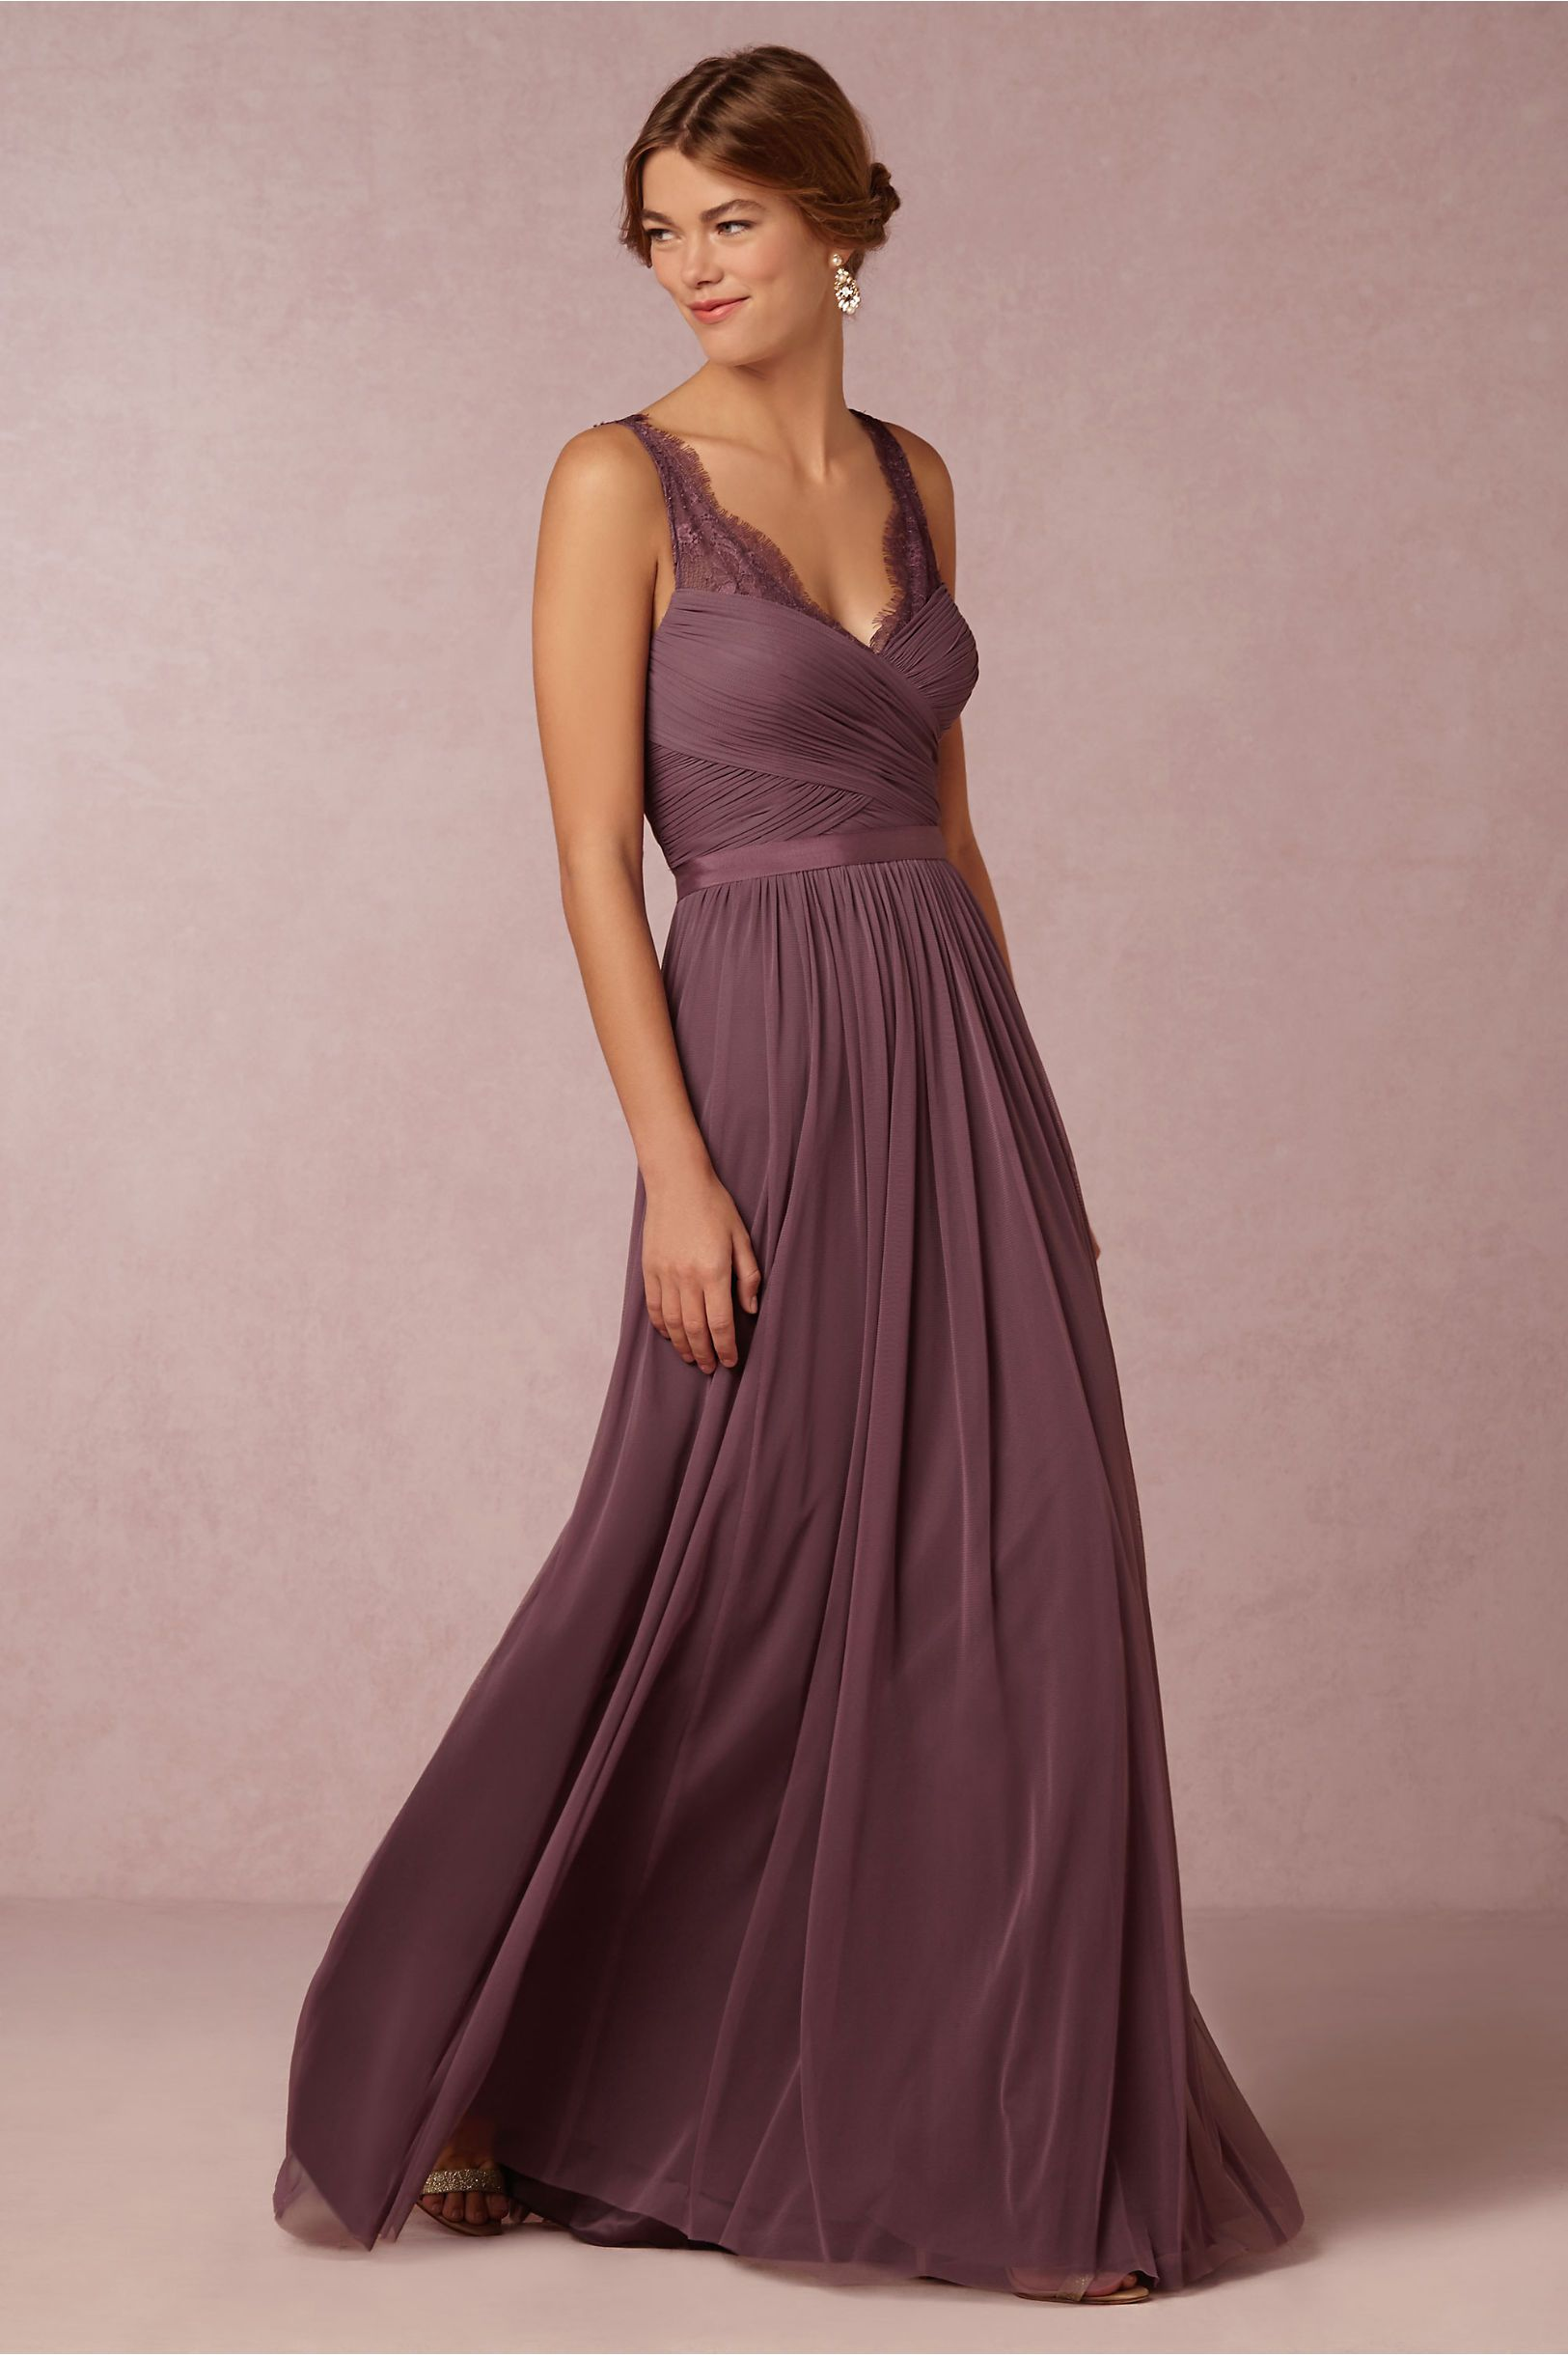 398d063d684 Fleur Dress in Bridesmaids Bridesmaid Dresses Long at BHLDN. Vintage Lace  Straps Pleated Long Chiffon Eggplant ...